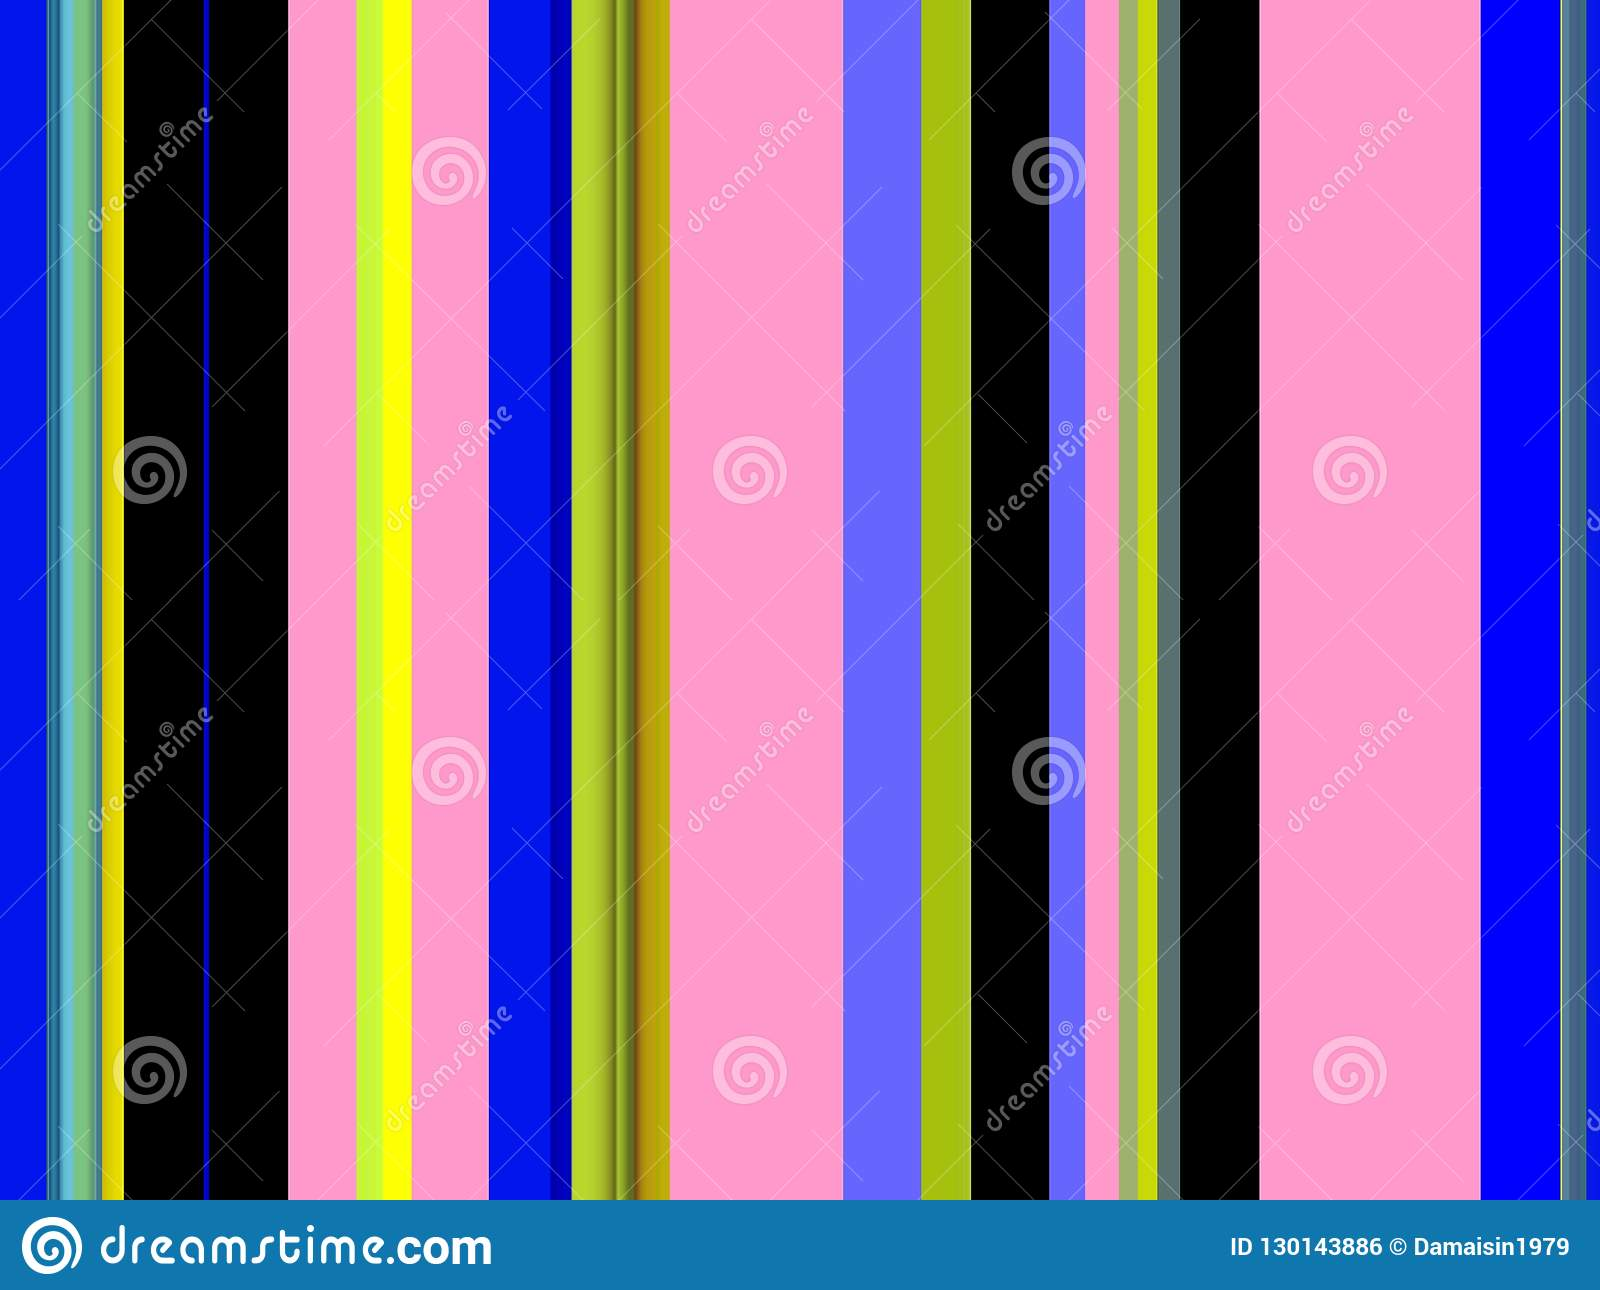 Blue yellow green black pink lines background, abstract colorful geometries